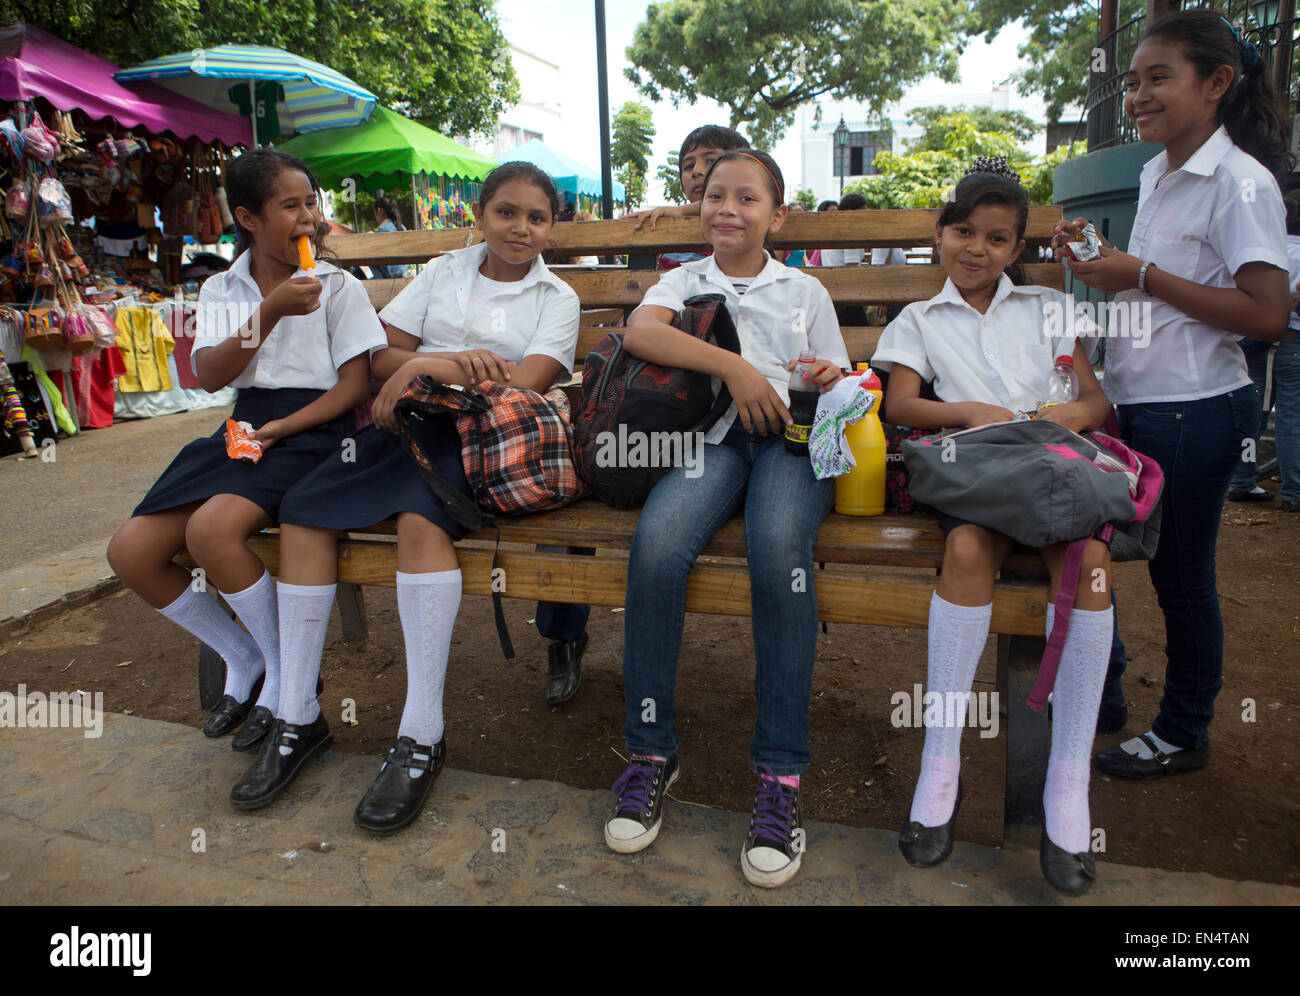 students in Nicaragua - Stock Image